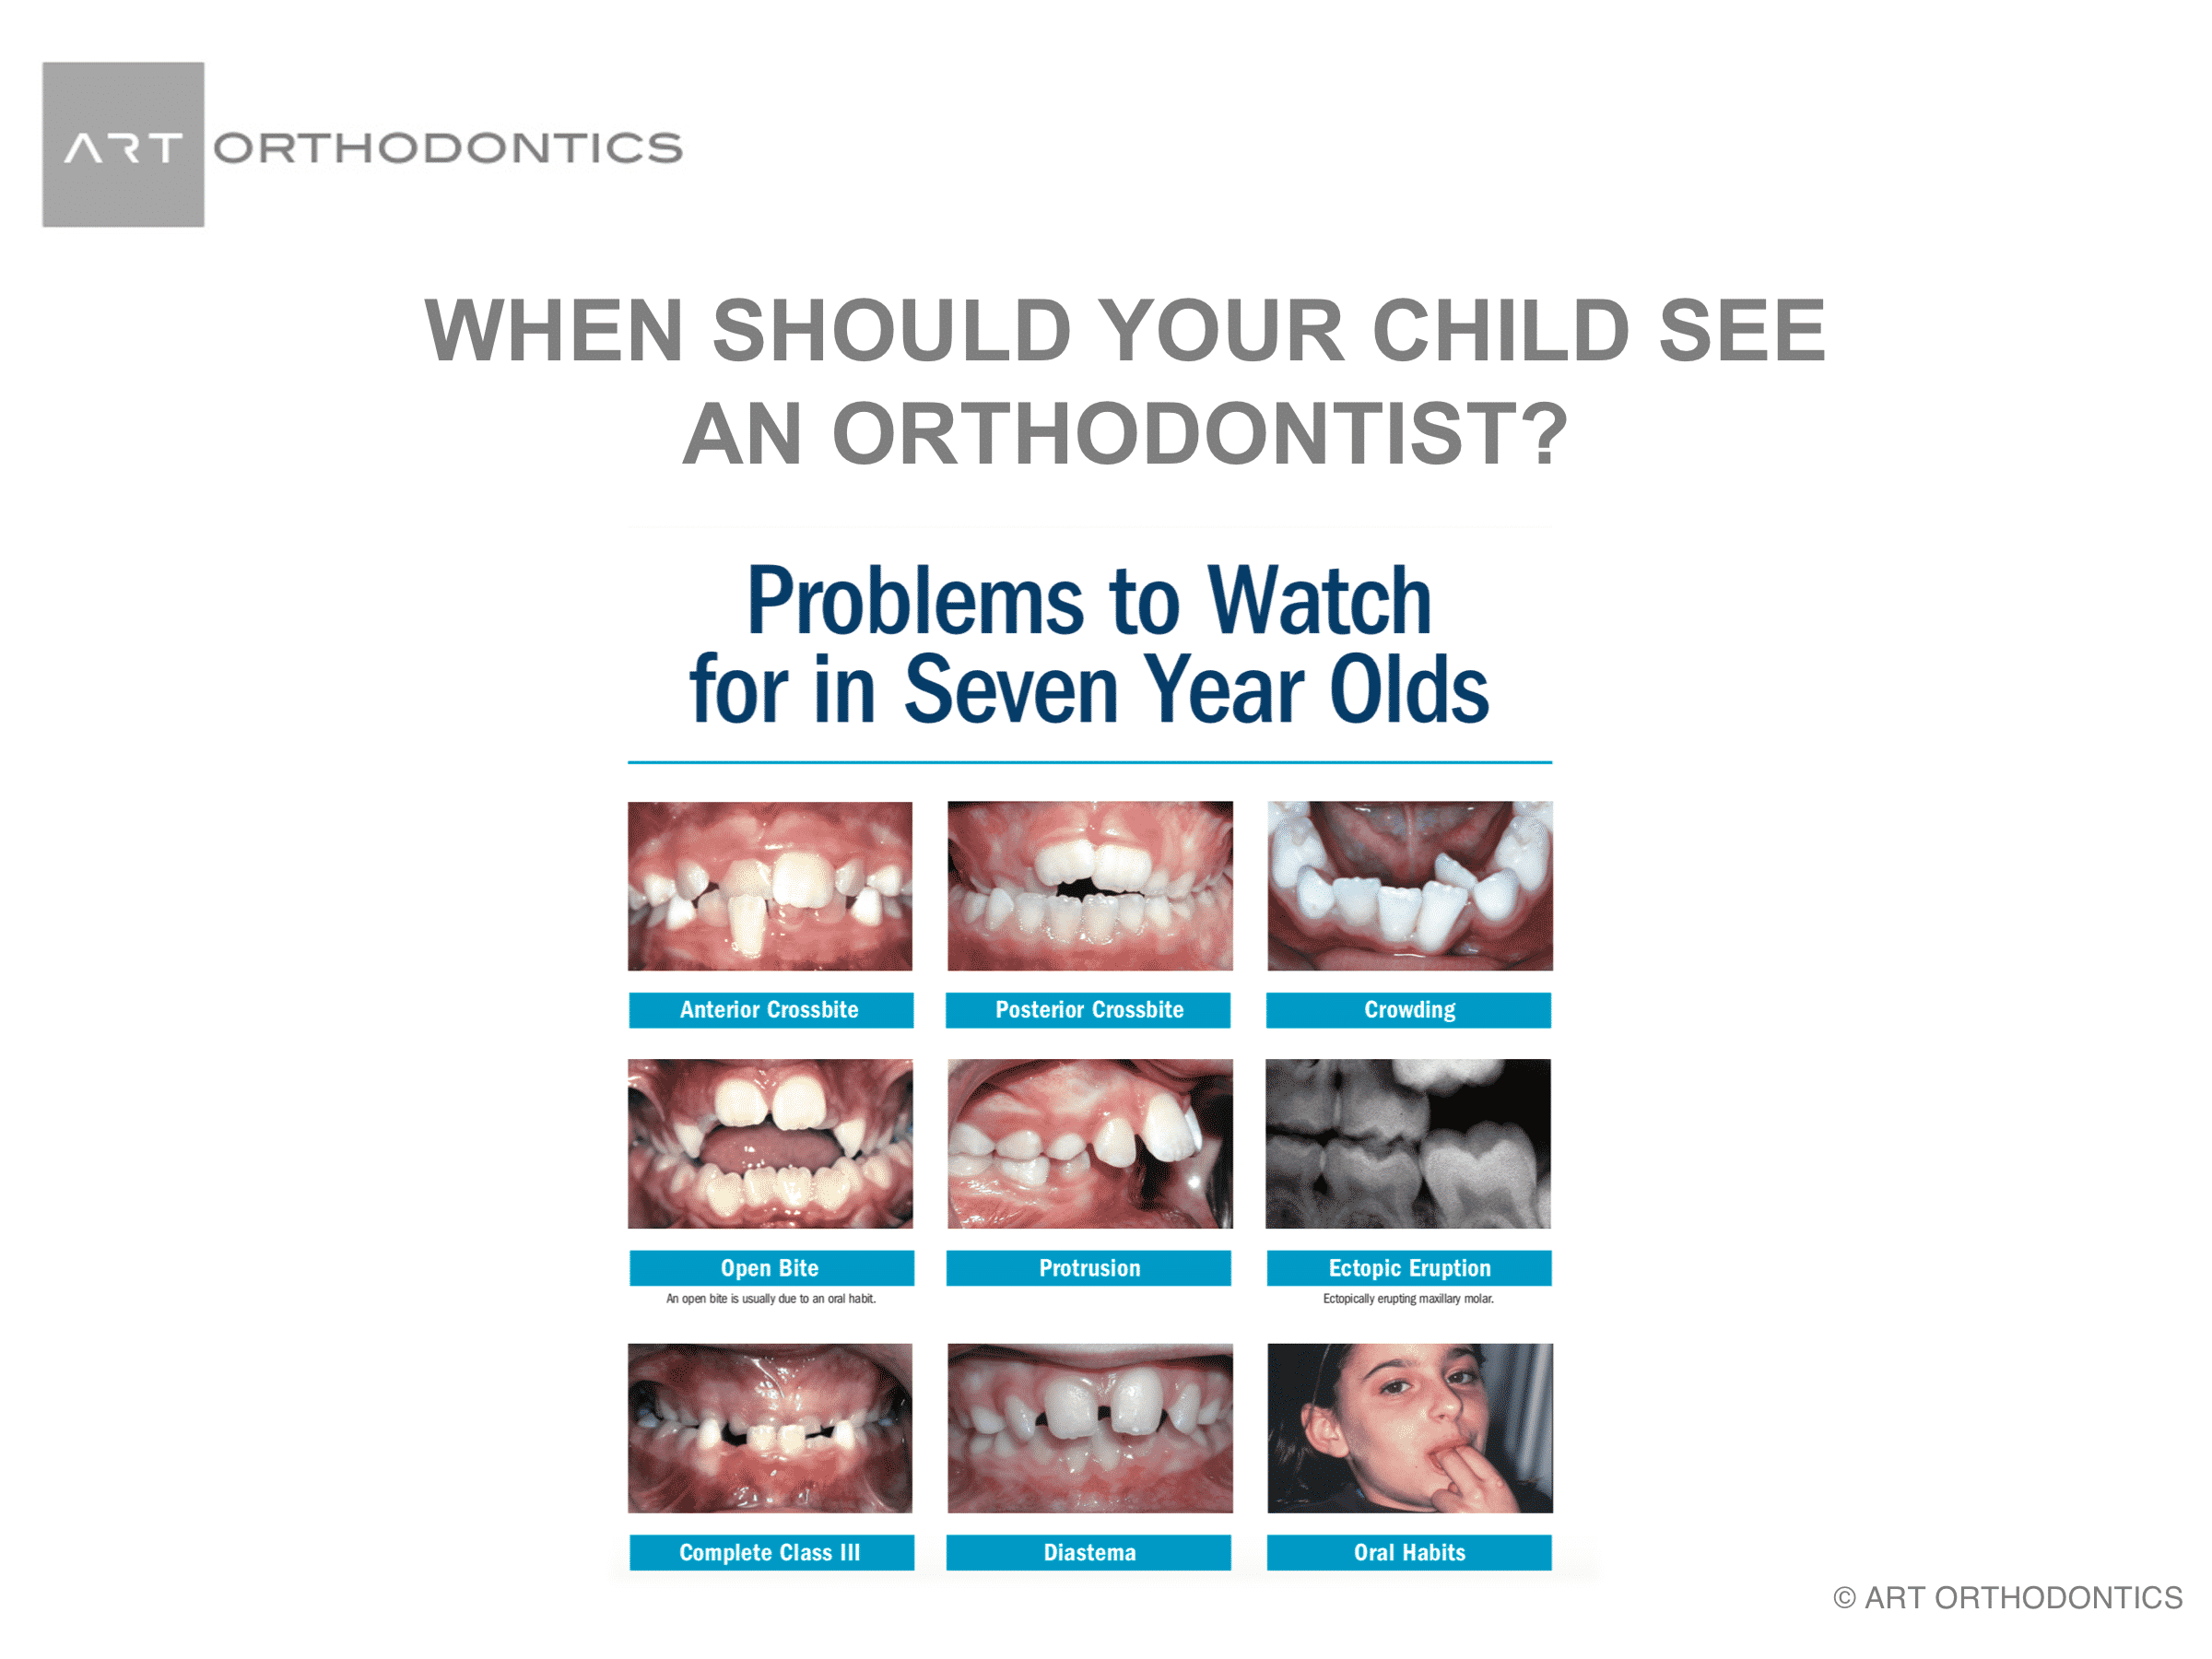 Nine reasons why 7 year olds should see an orthocdontist